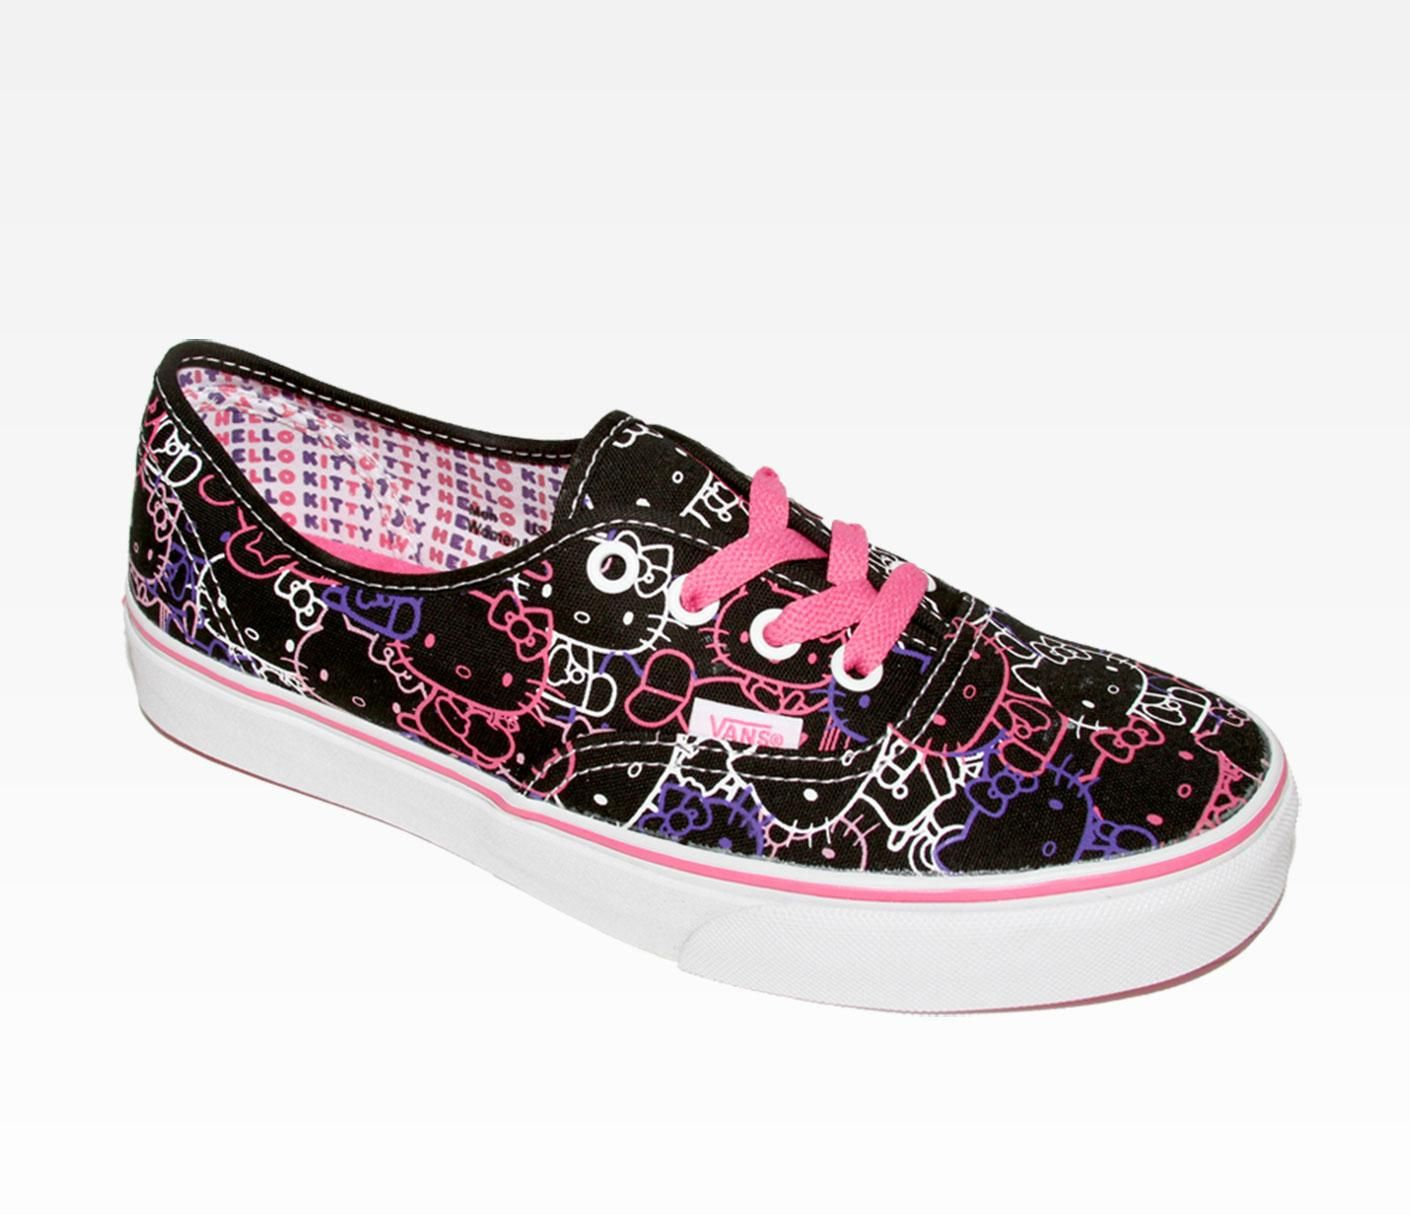 Vans Kitty Lace X UpBlackhello Authentic Hello Kitty UzVMpS